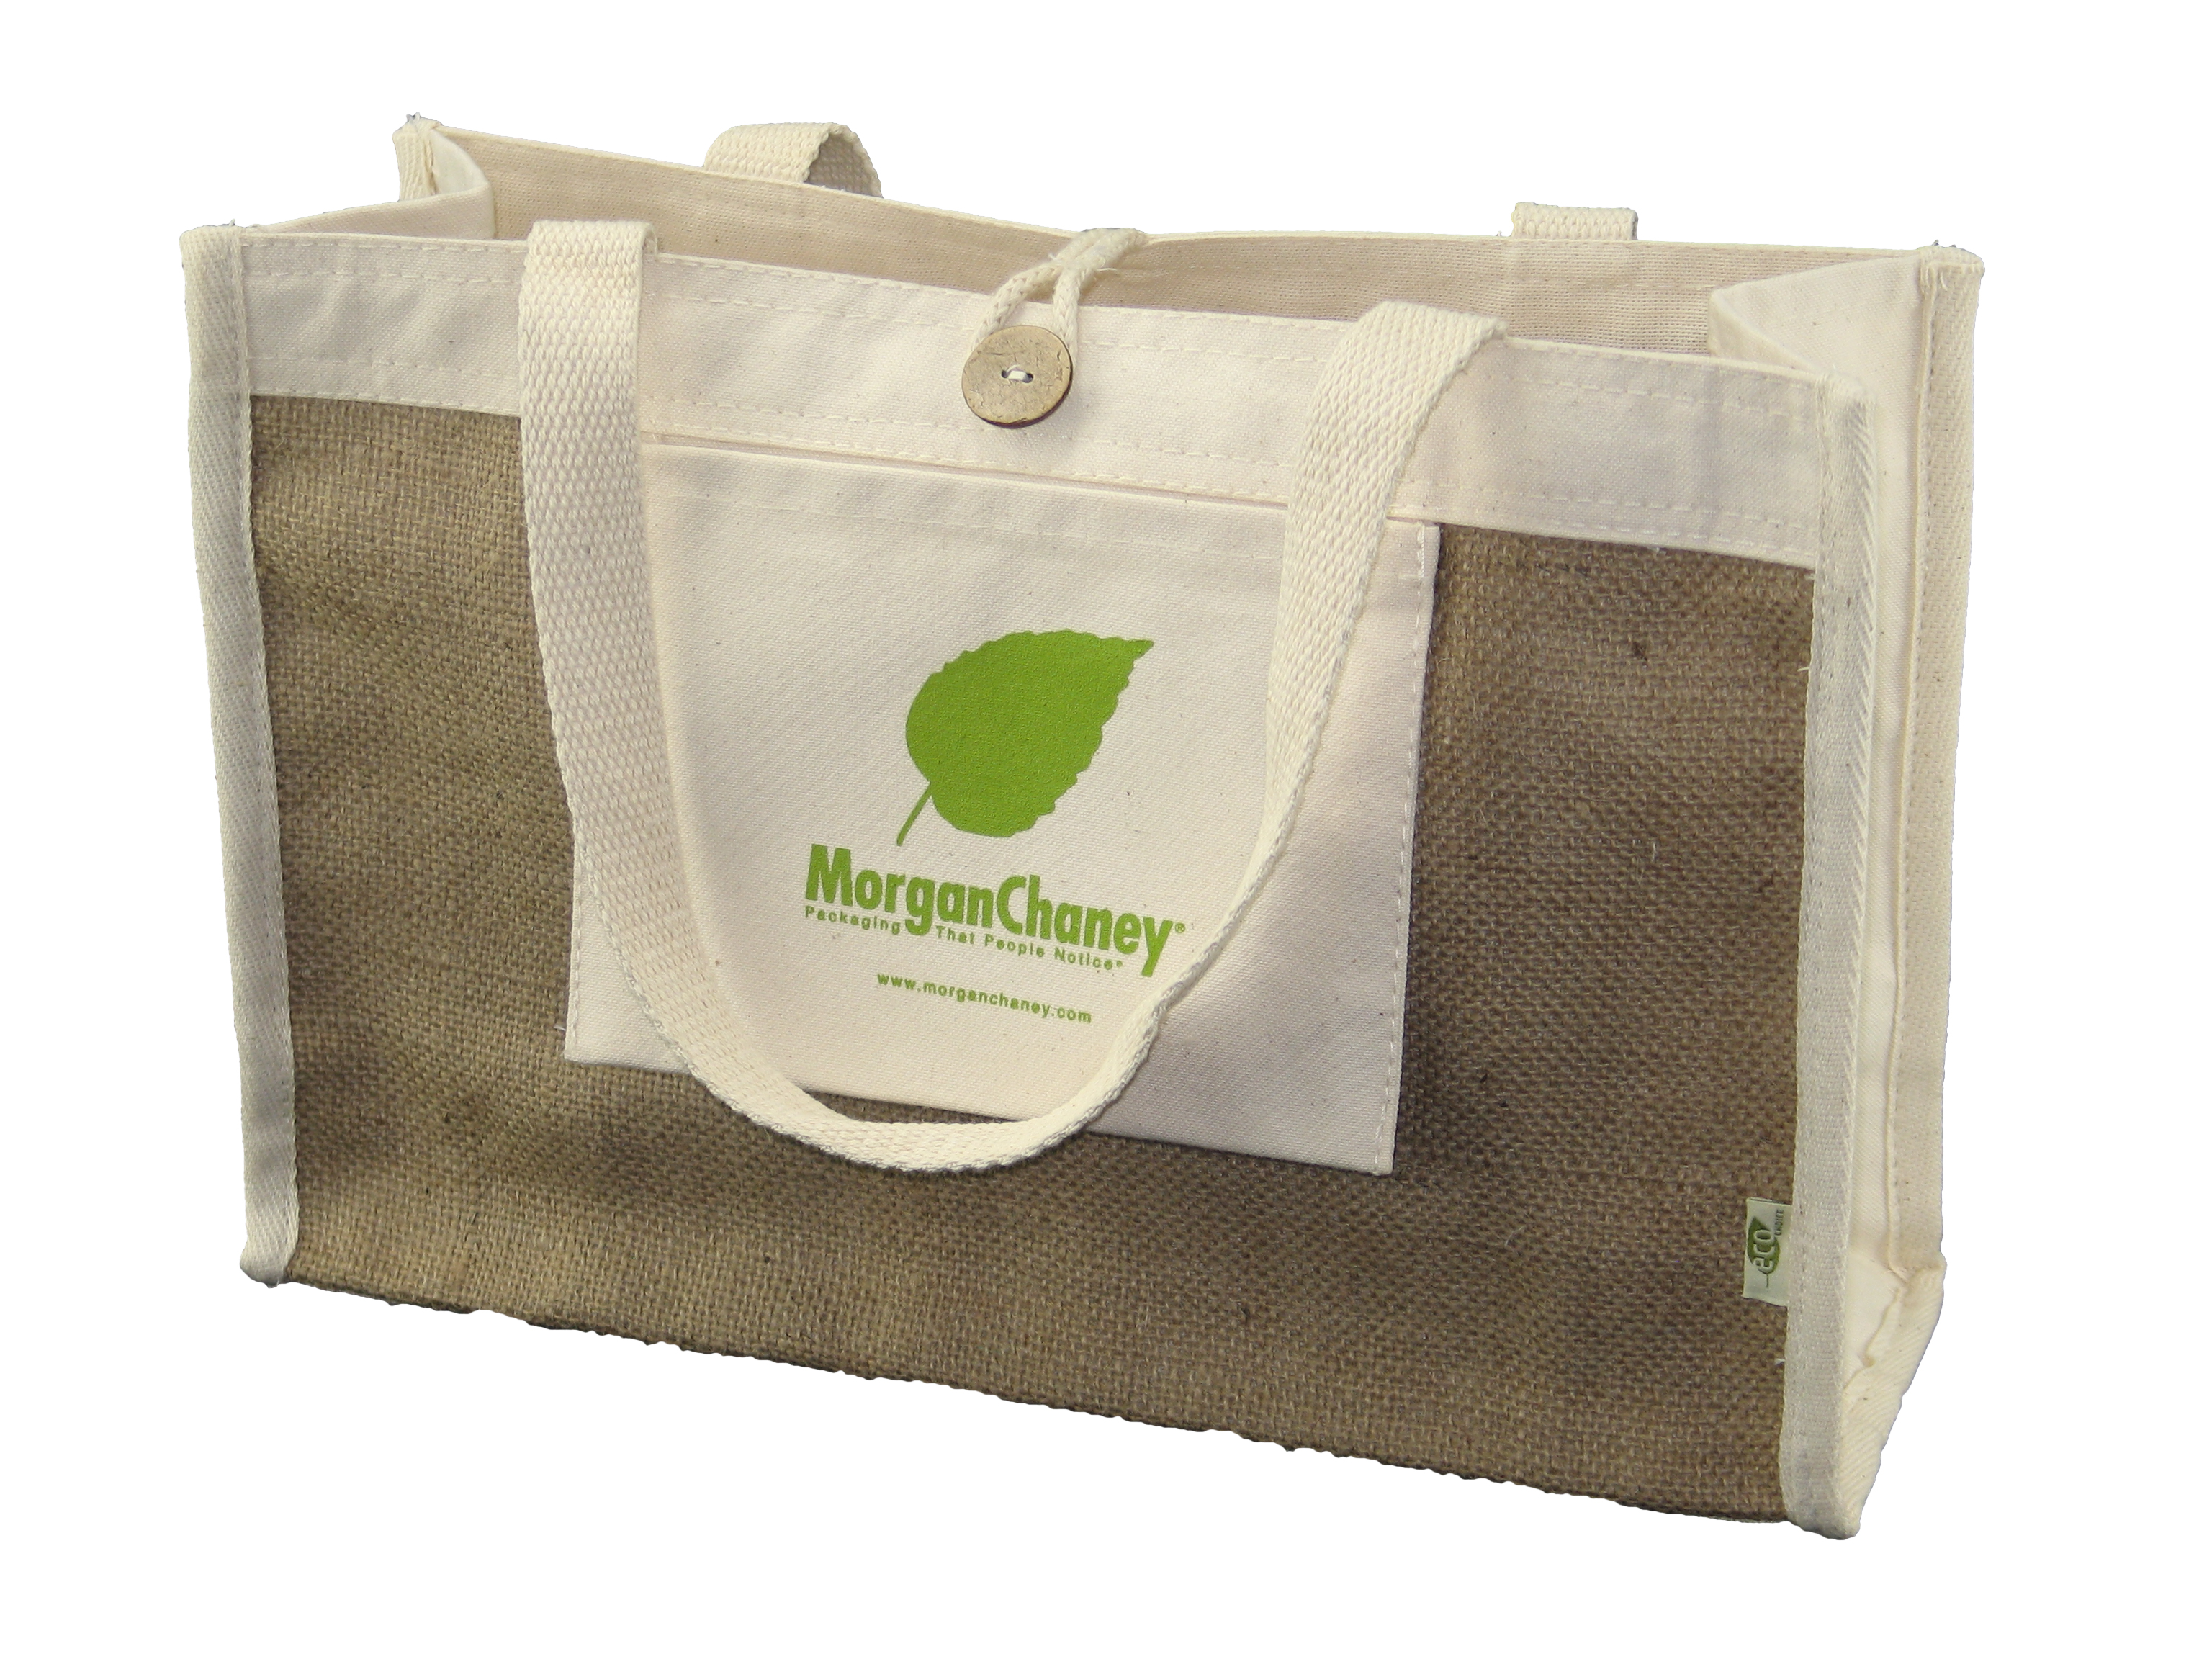 Custom Reusable Tote Bags | Morgan Chaney - Custom Printed Packaging